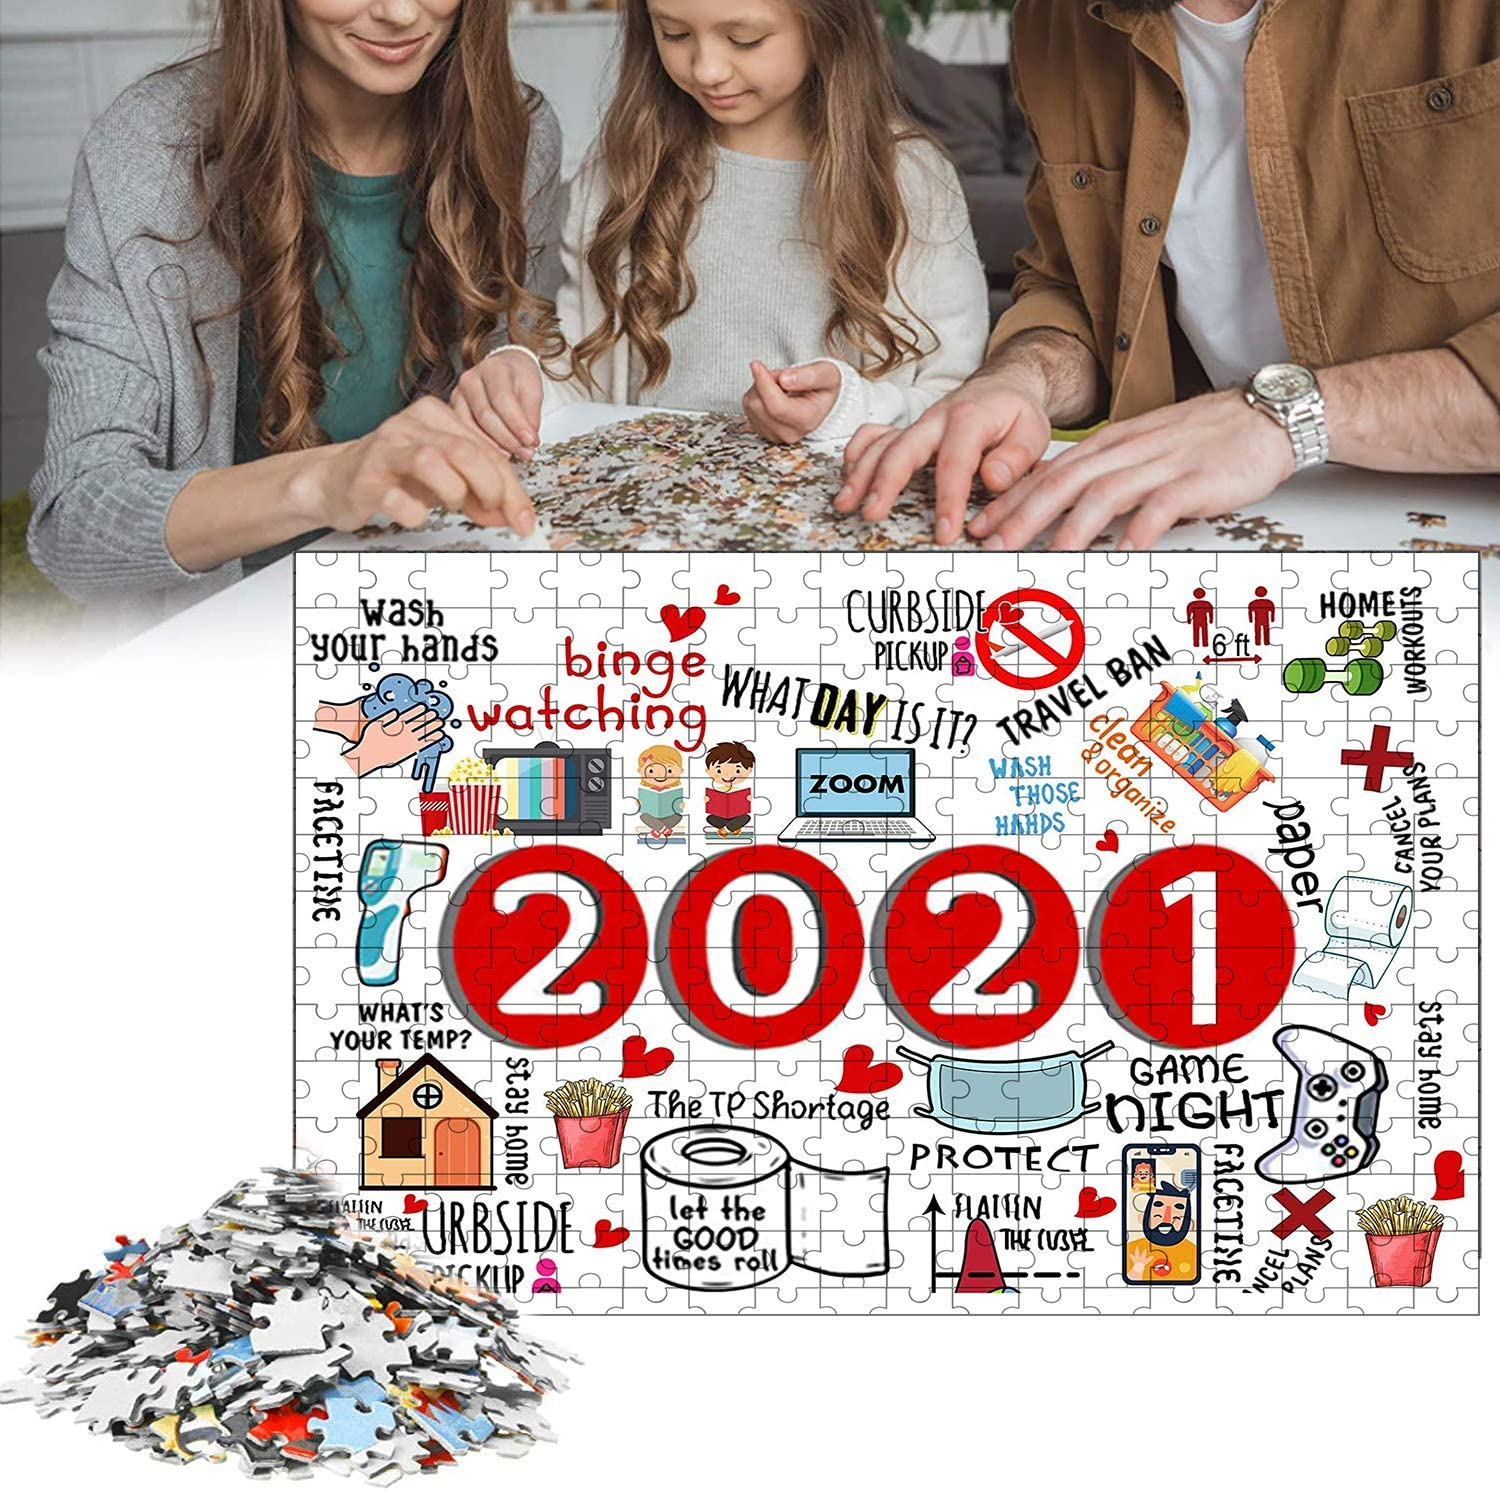 Christmas Paper Puzzles with Friend Or Family DIY Stress Relief Game Play Collection Home Decorations Puzzles for Adults 1000 Piece Jigsaw to 2021Commemoration Jigsaws Puzzle Adult and Children